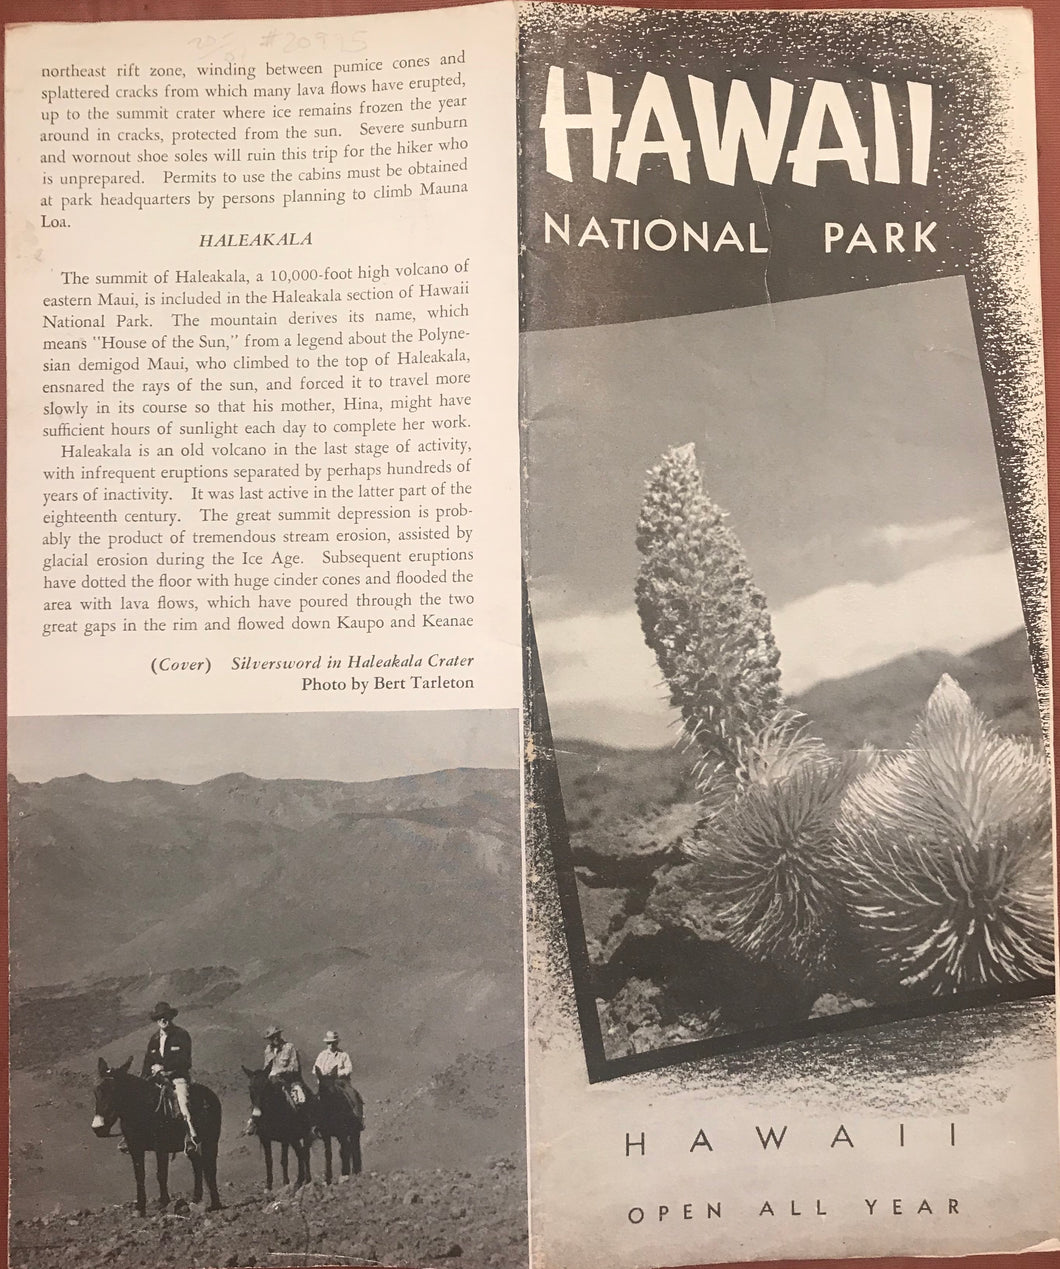 1949 Hawaii National Park Brochure